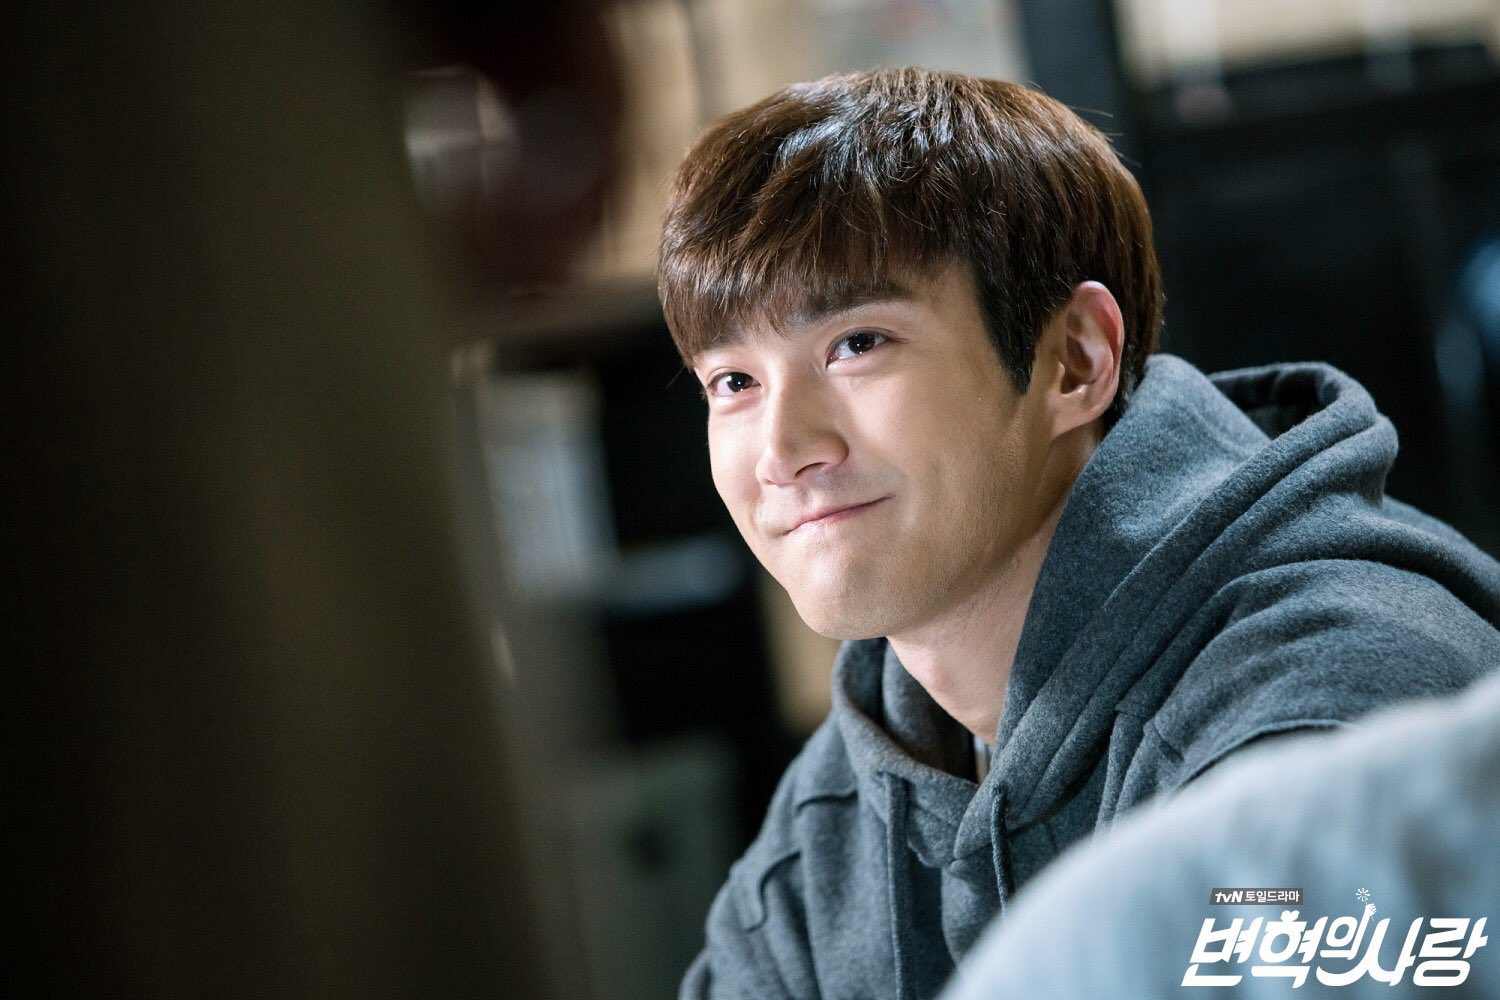 [HD PIC] 171123 CJnDrama Twitter Update - Actor Siwon showing his cutest smile ever! https://t.co/uv1mRsGF1k